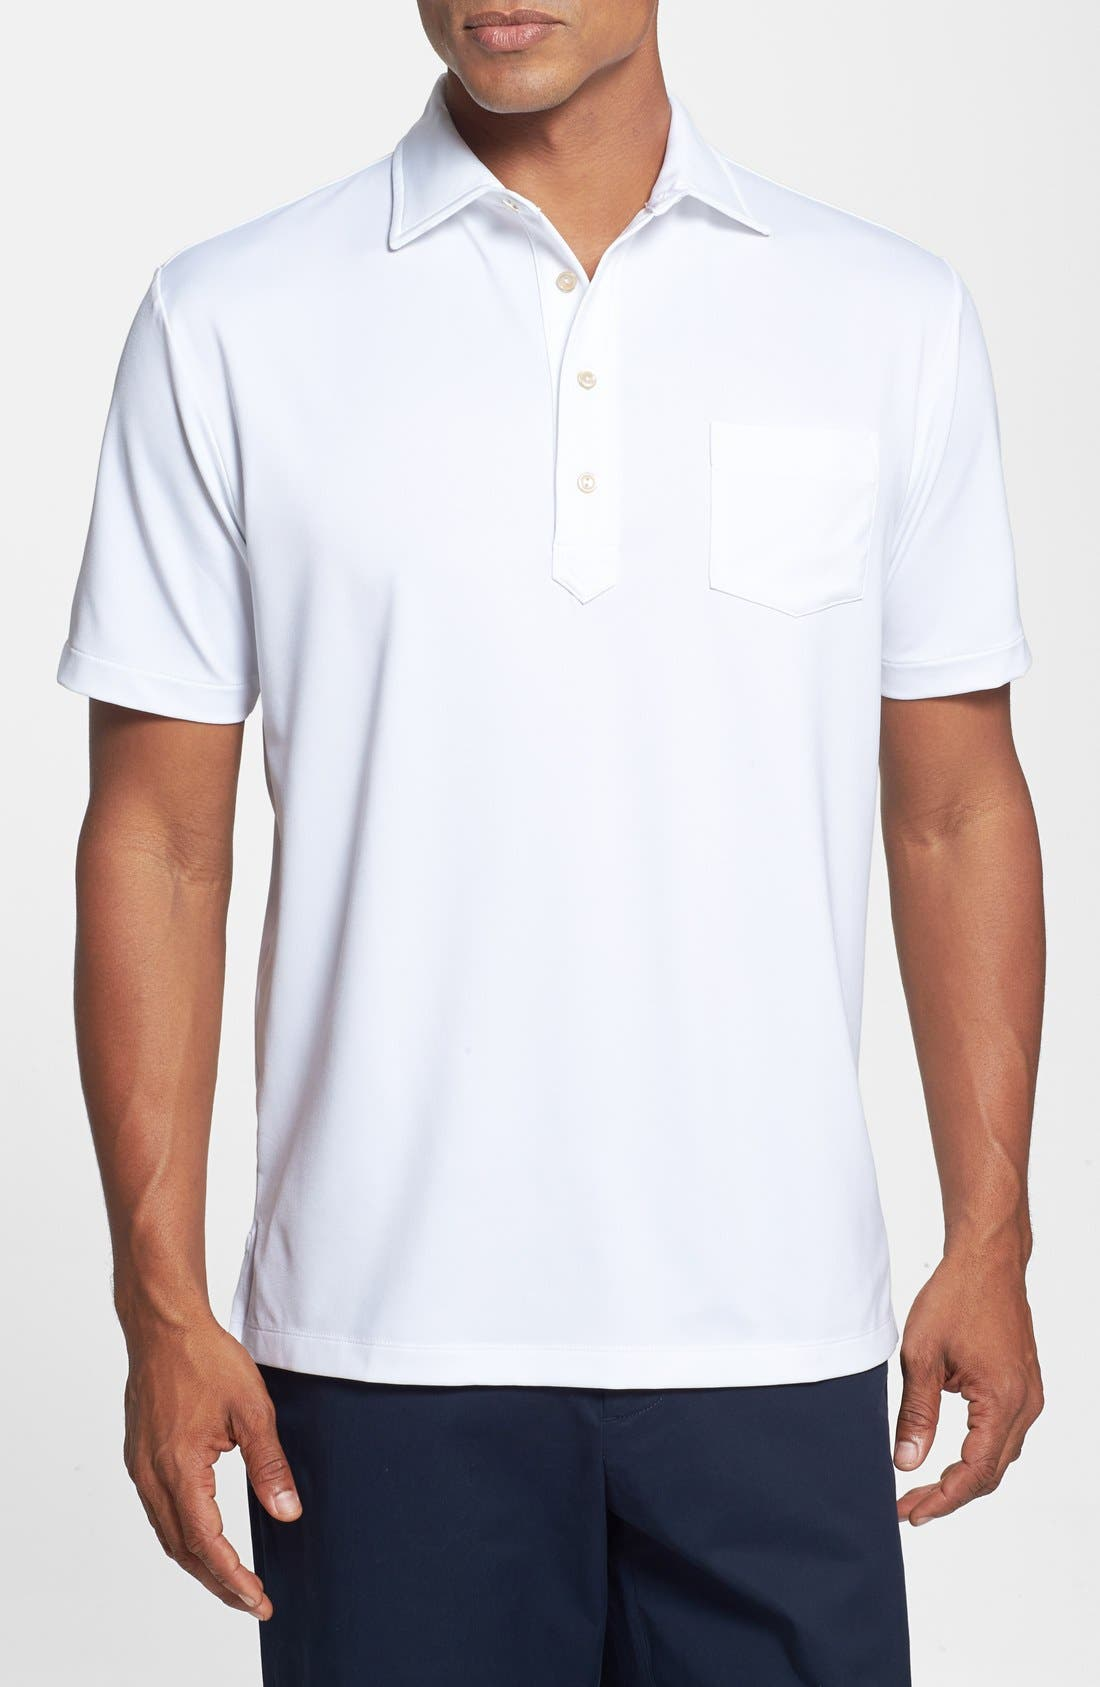 Alternate Image 1 Selected - Peter Millar Moisture Wicking Stretch Polo